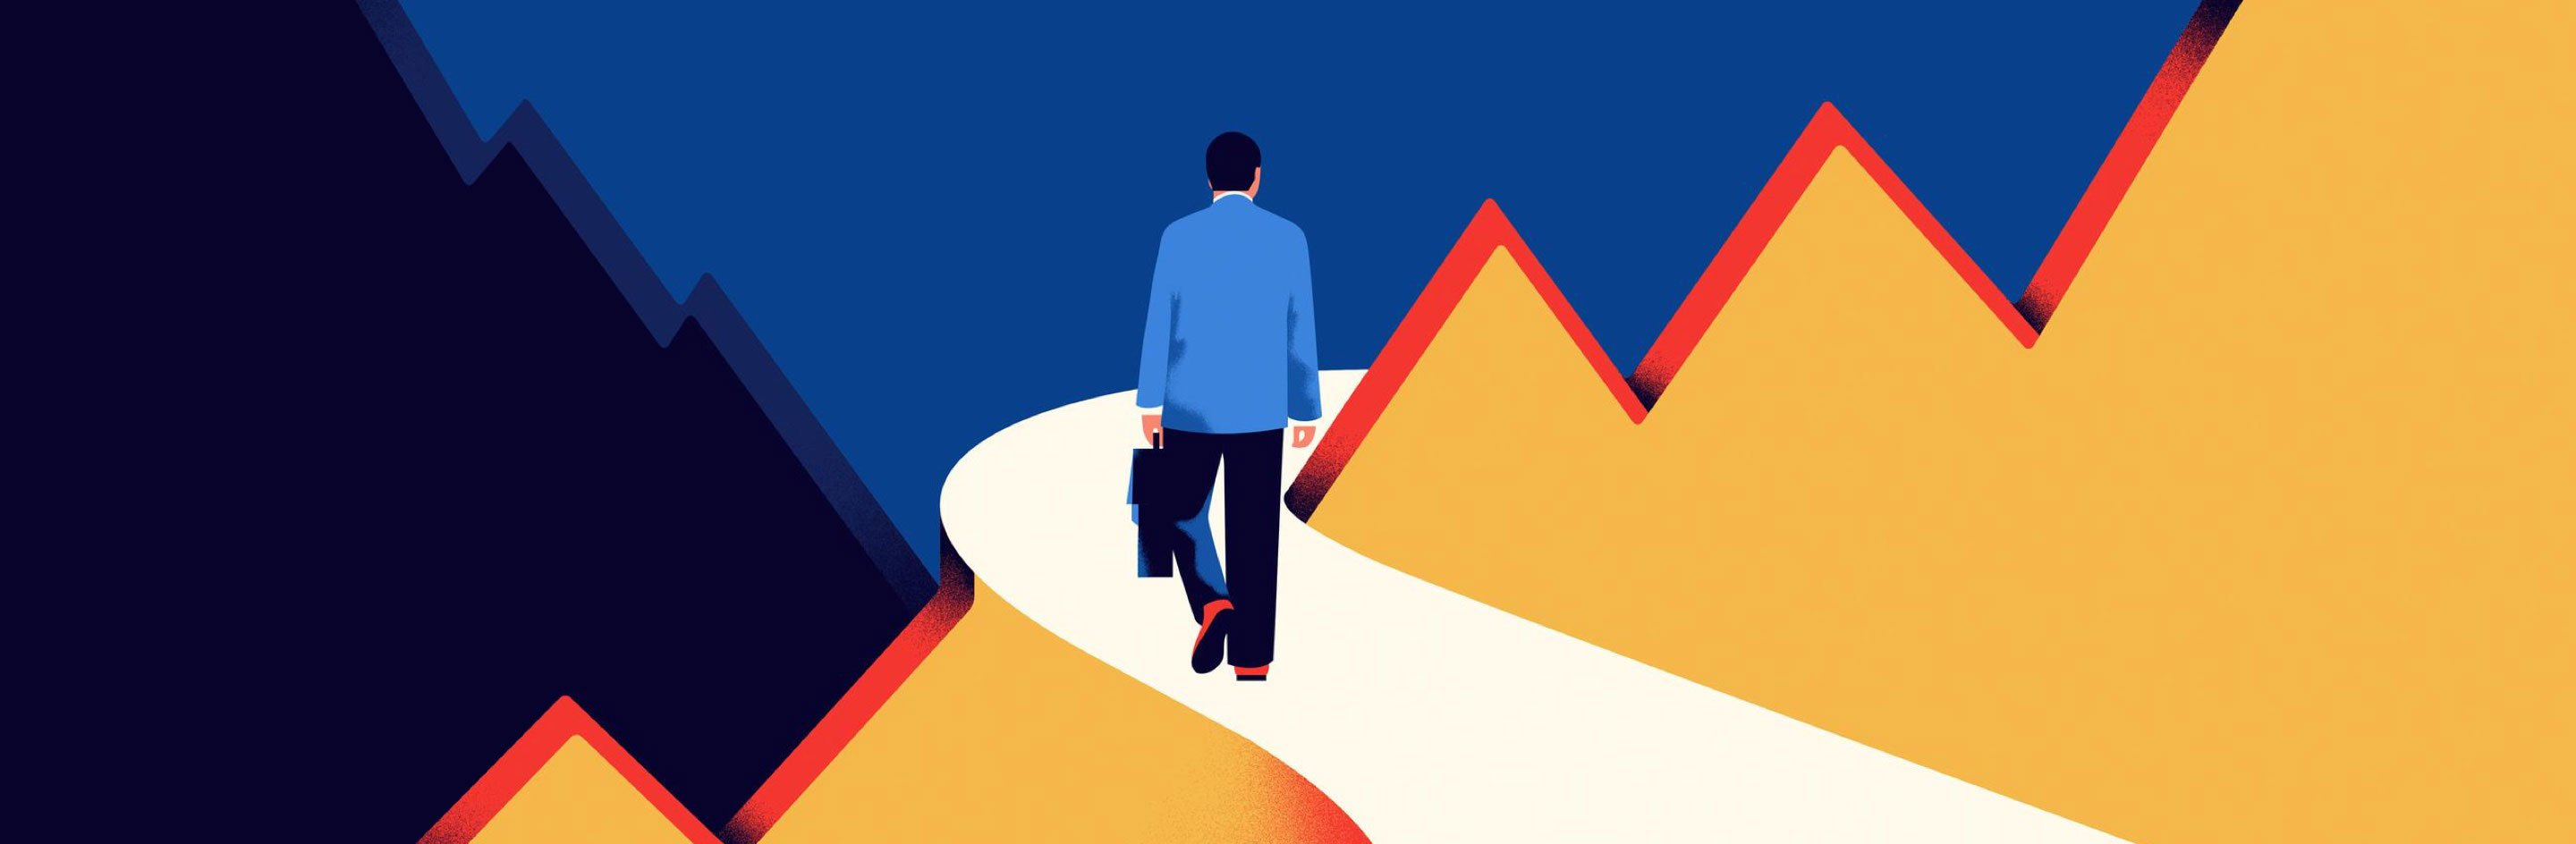 Illustration of a brief-case carrying man in a suit walking along a path through stylised mountains.